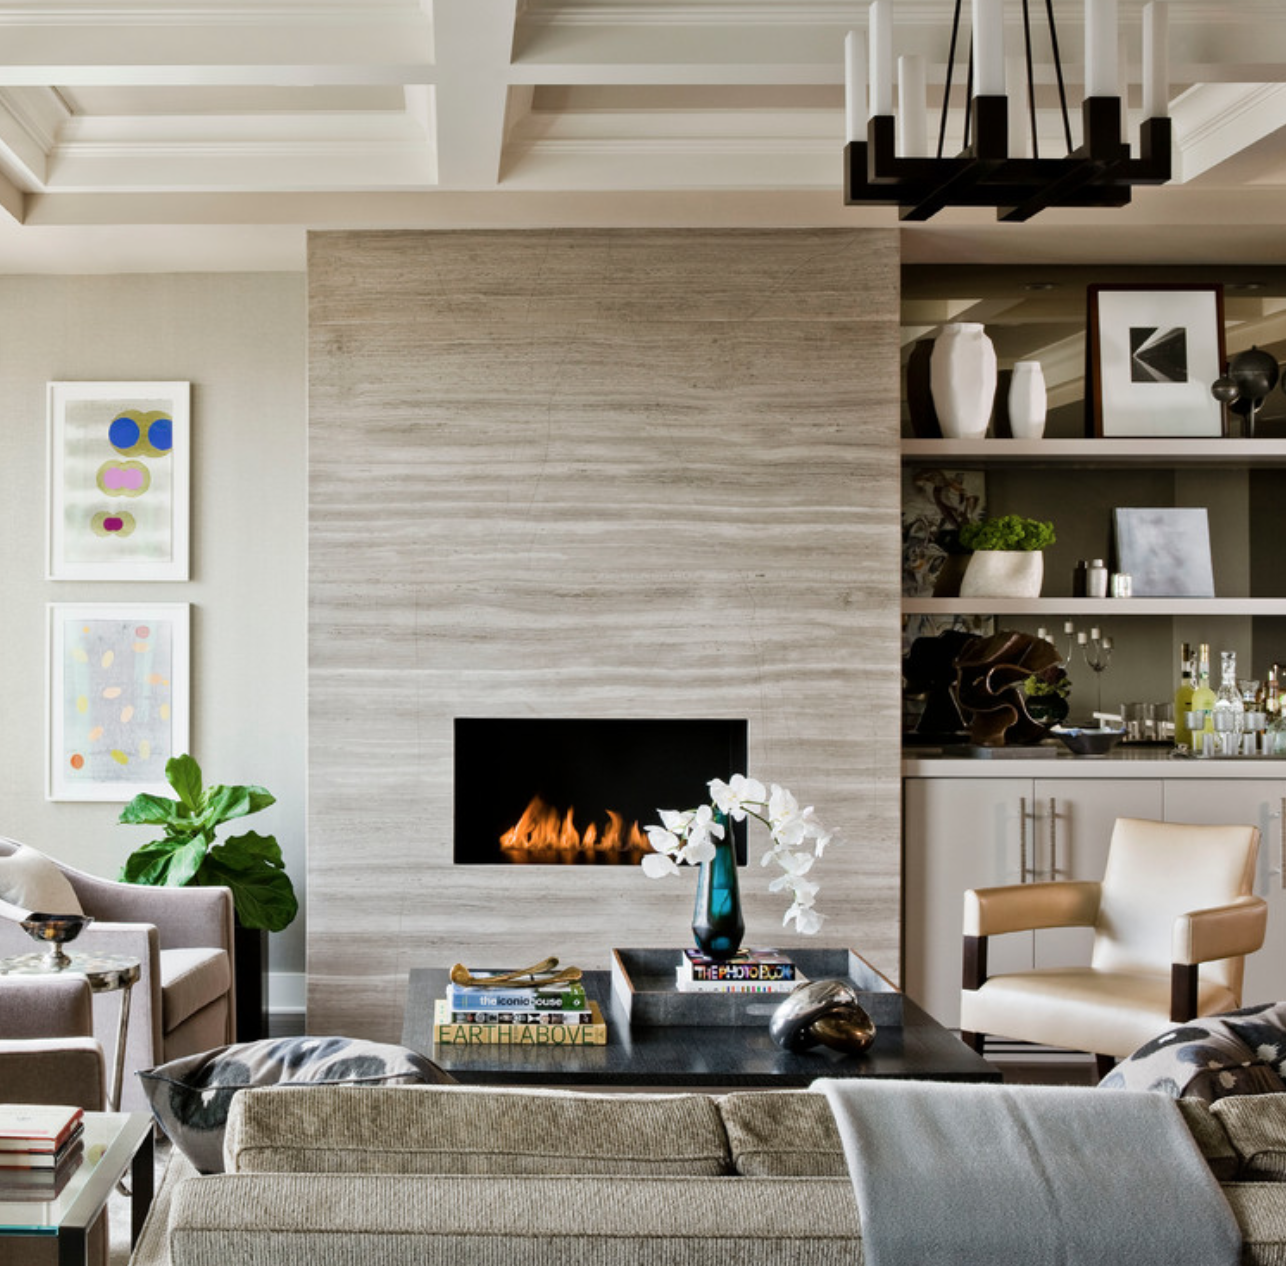 Looking for the right fireplace? Take a look at these ...